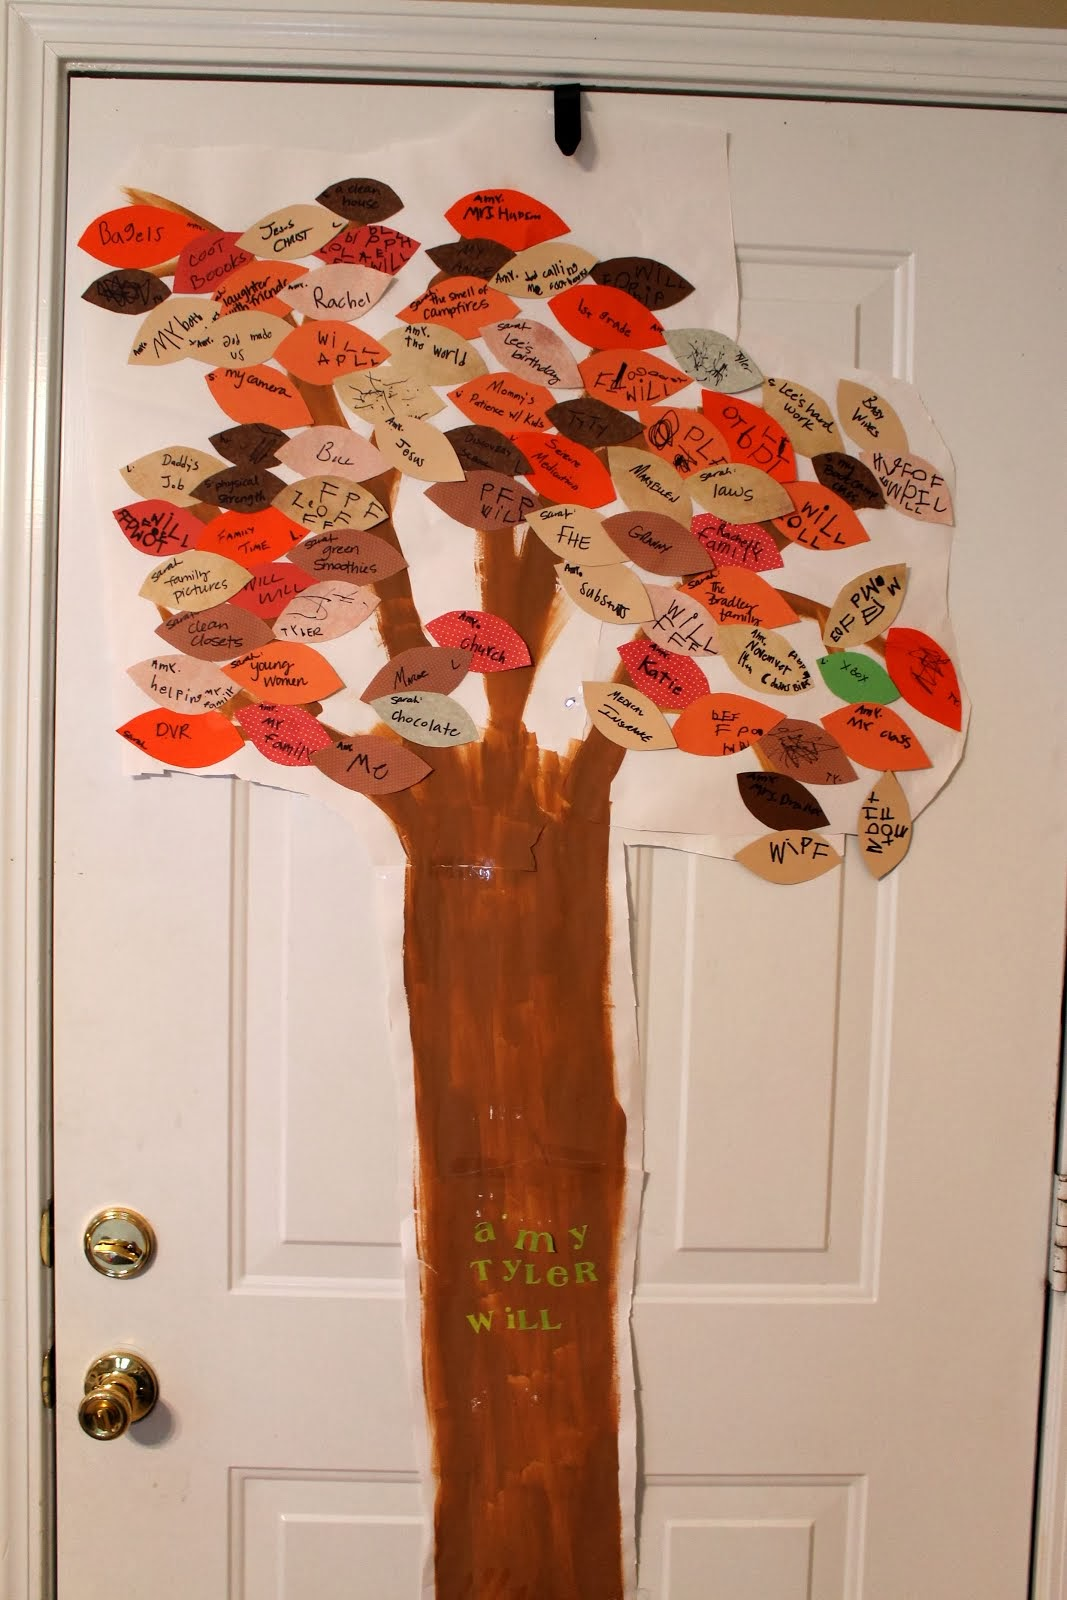 Thankful Tree, Year 2